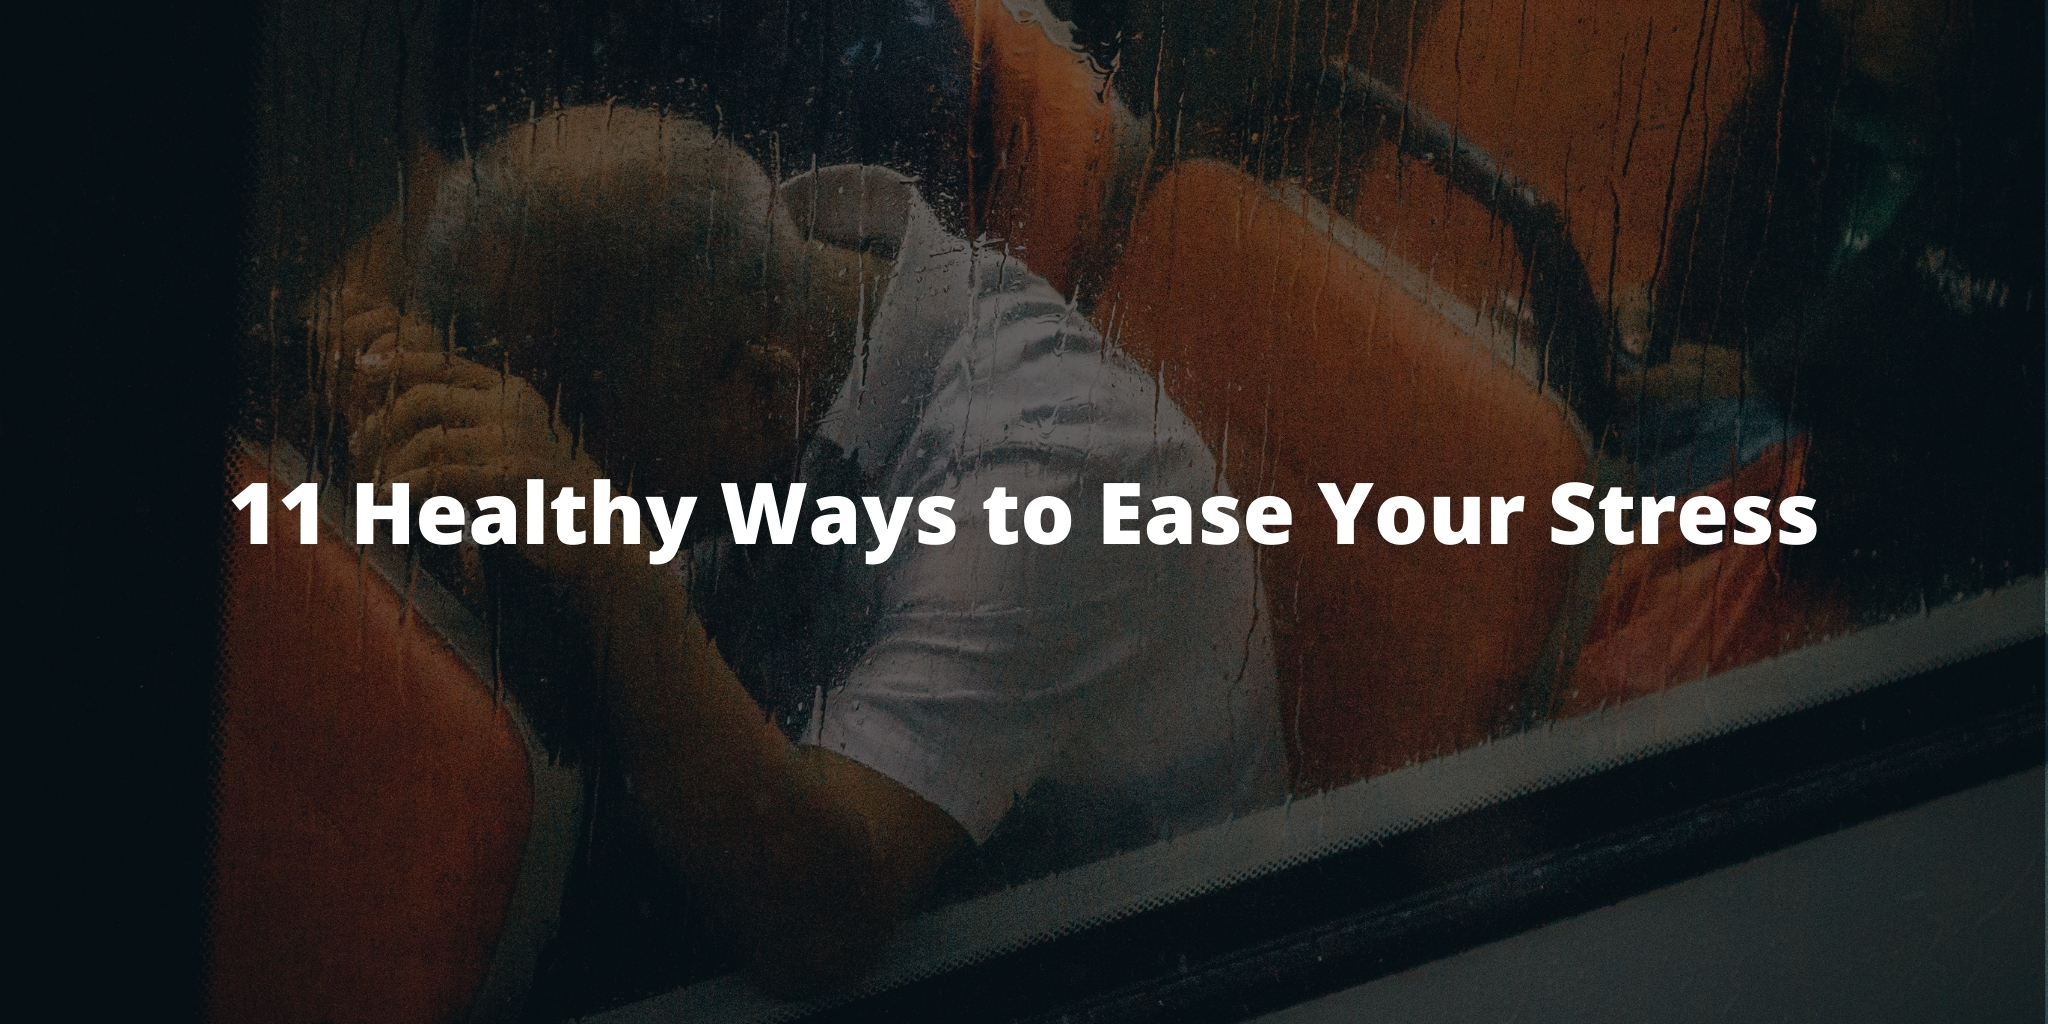 11 Healthy Ways to Ease Your Stress